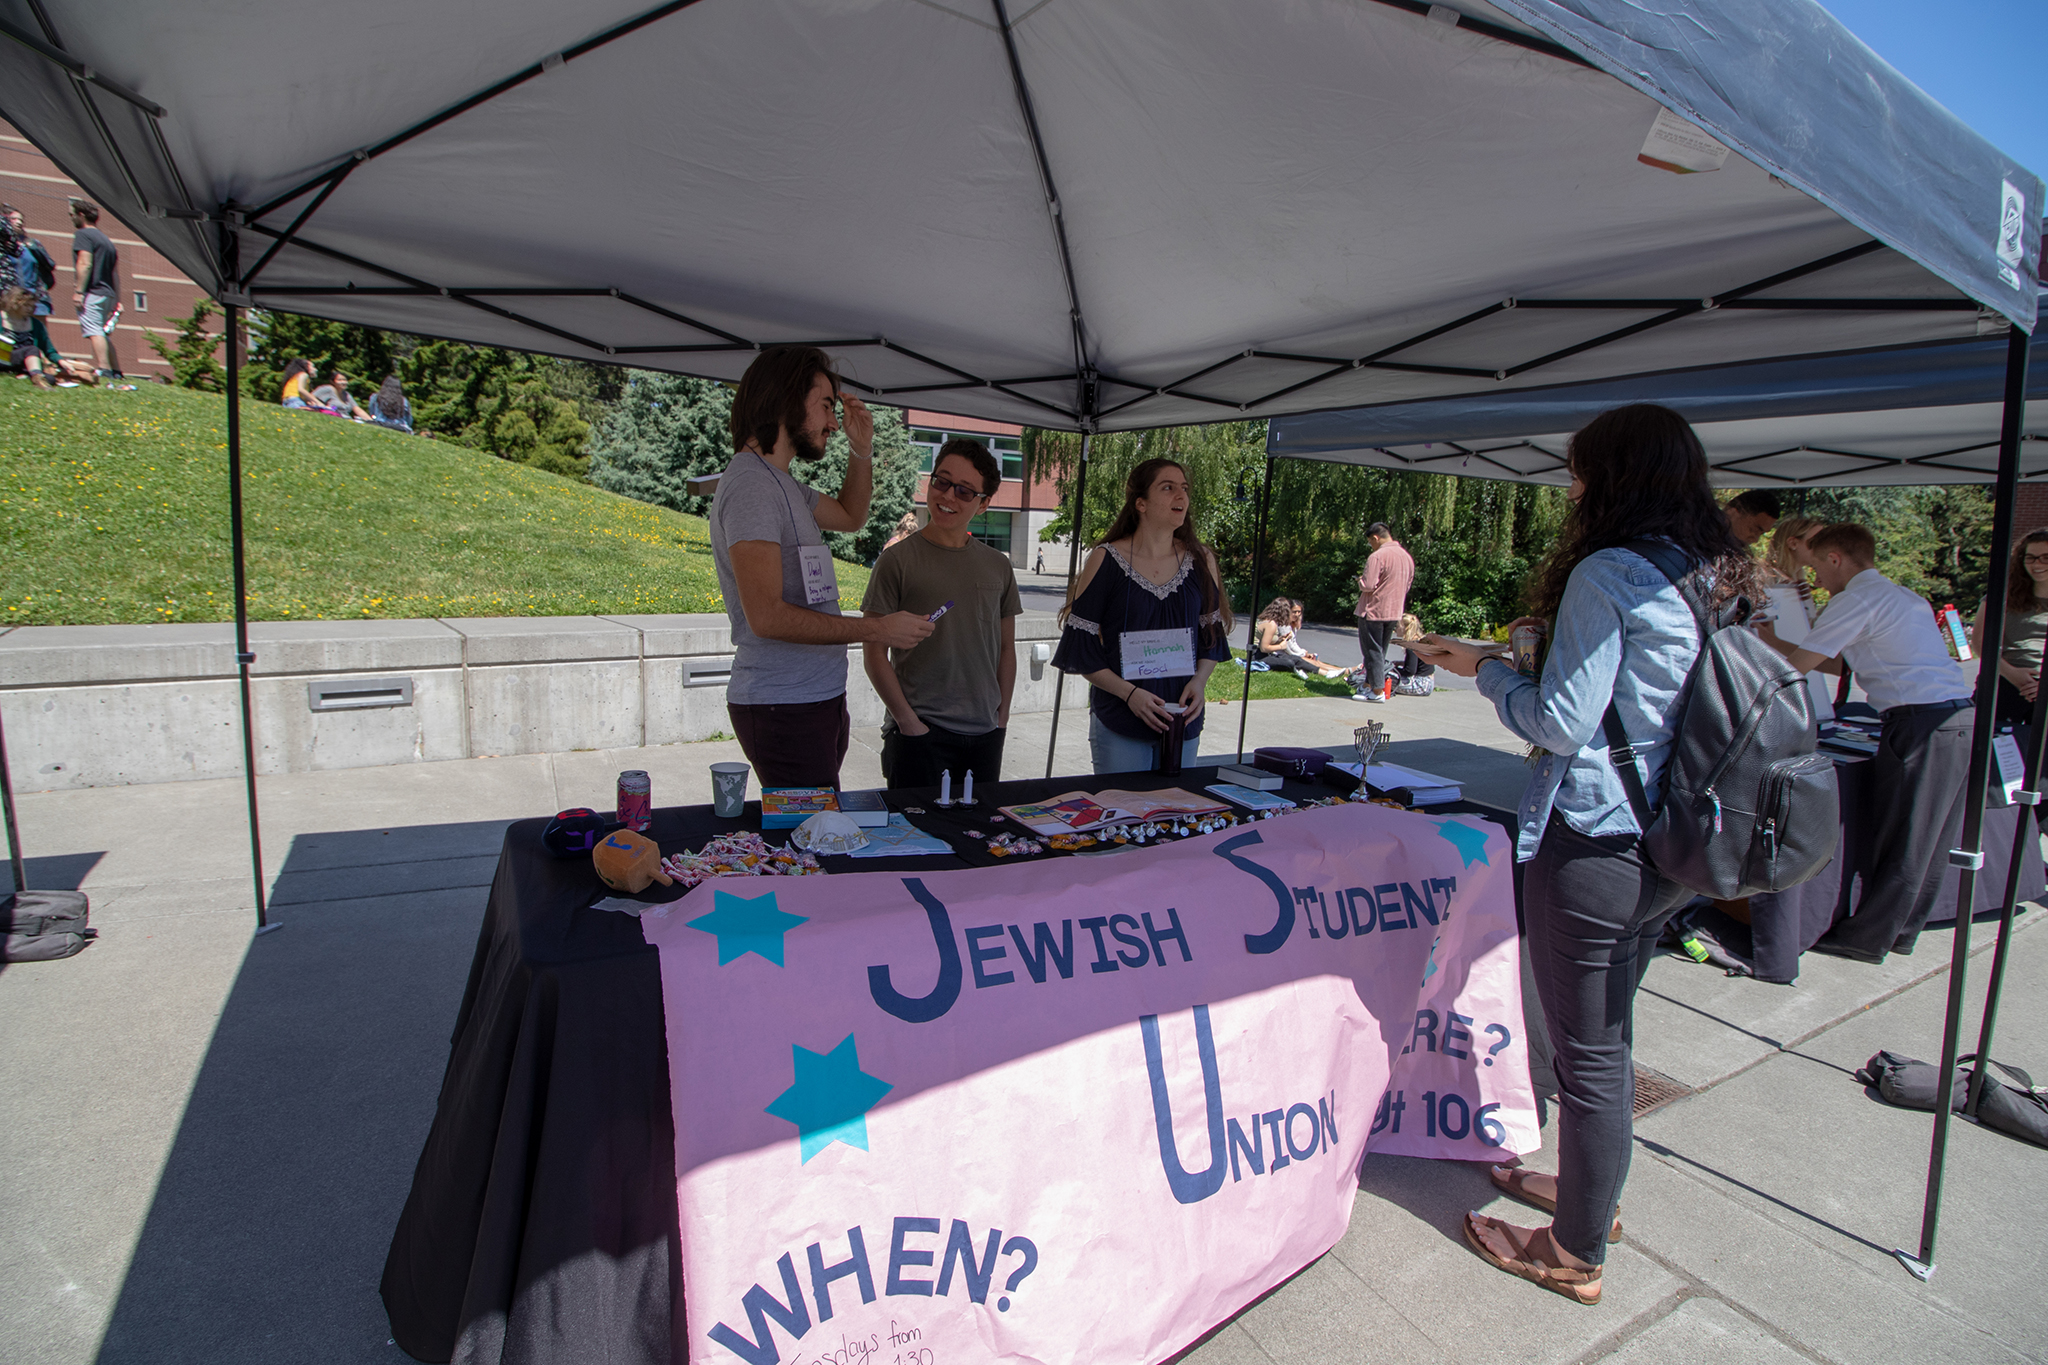 Interfaith Fair Provides Open Space for Communities of Faith